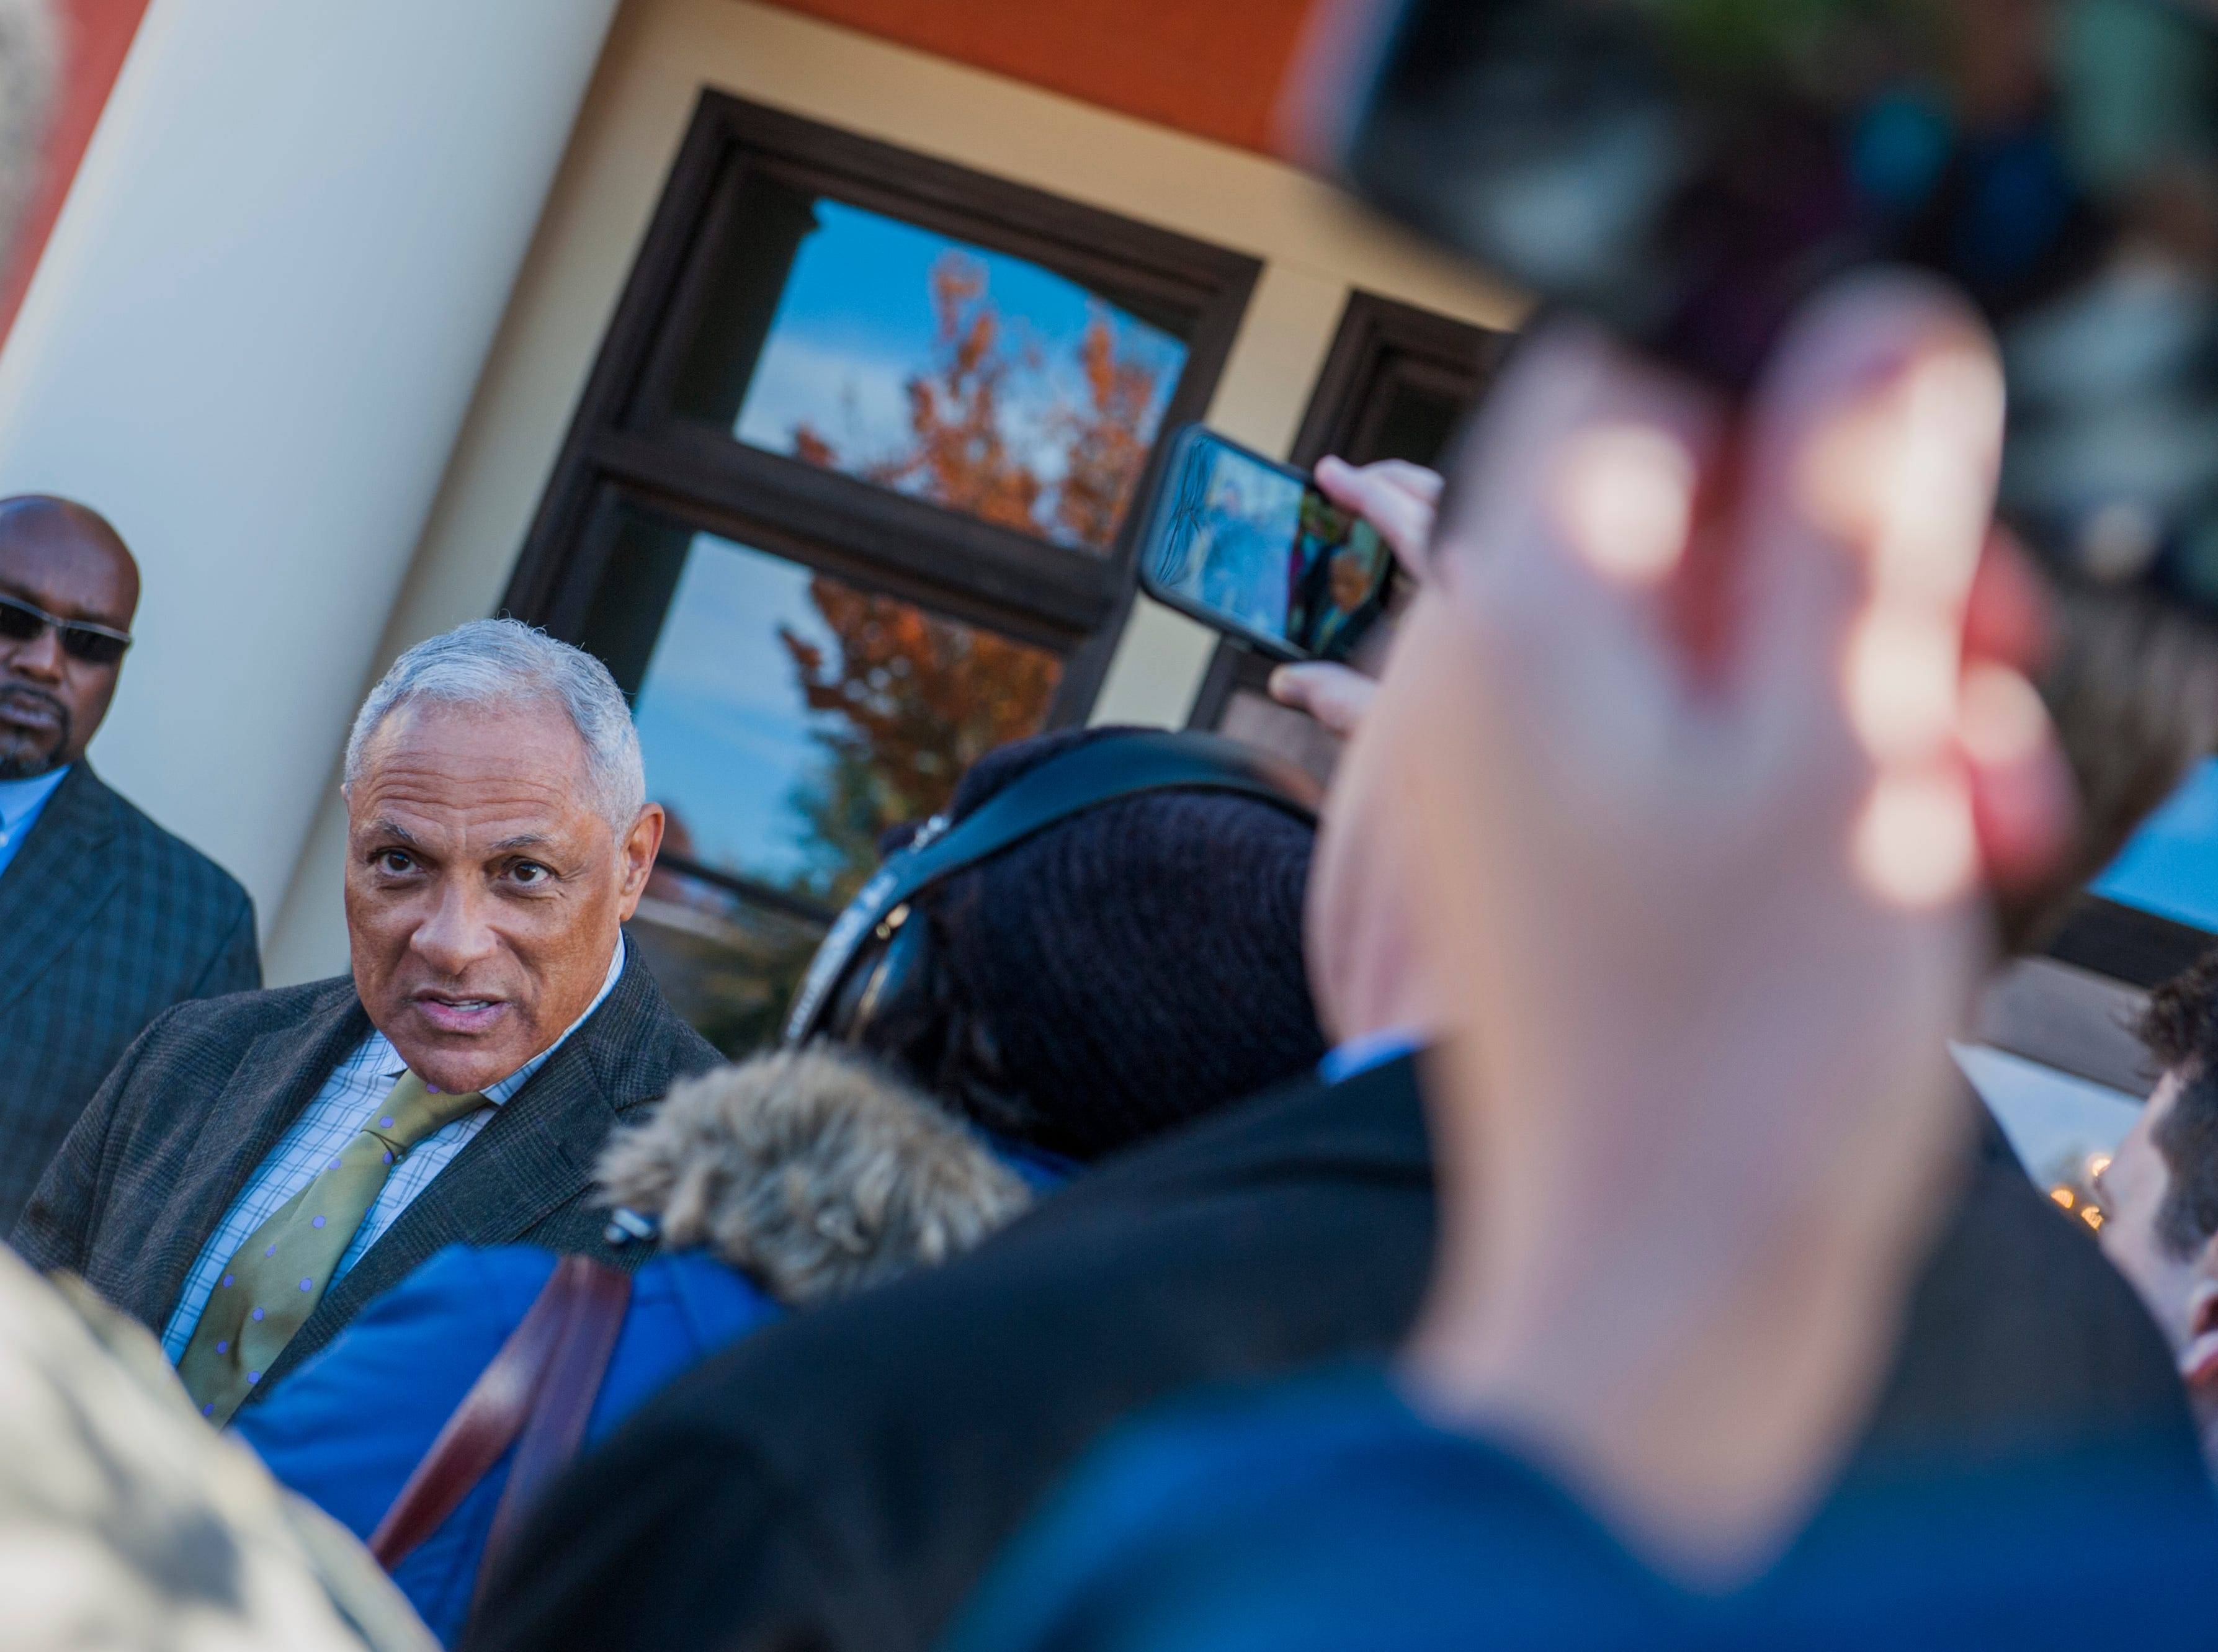 Senate candidate Mike Espy answers questions from media outside Local 463 in Ridgeland Monday, Nov. 26, after he and his wife, Portia, stopped by the restaurant for lunch. Voters head to the polls Tuesday, Nov. 27, for a runoff to see who will serve the final two years of retired Sen. Thad Cochran's term, Espy or Cindy Hyde-Smith.